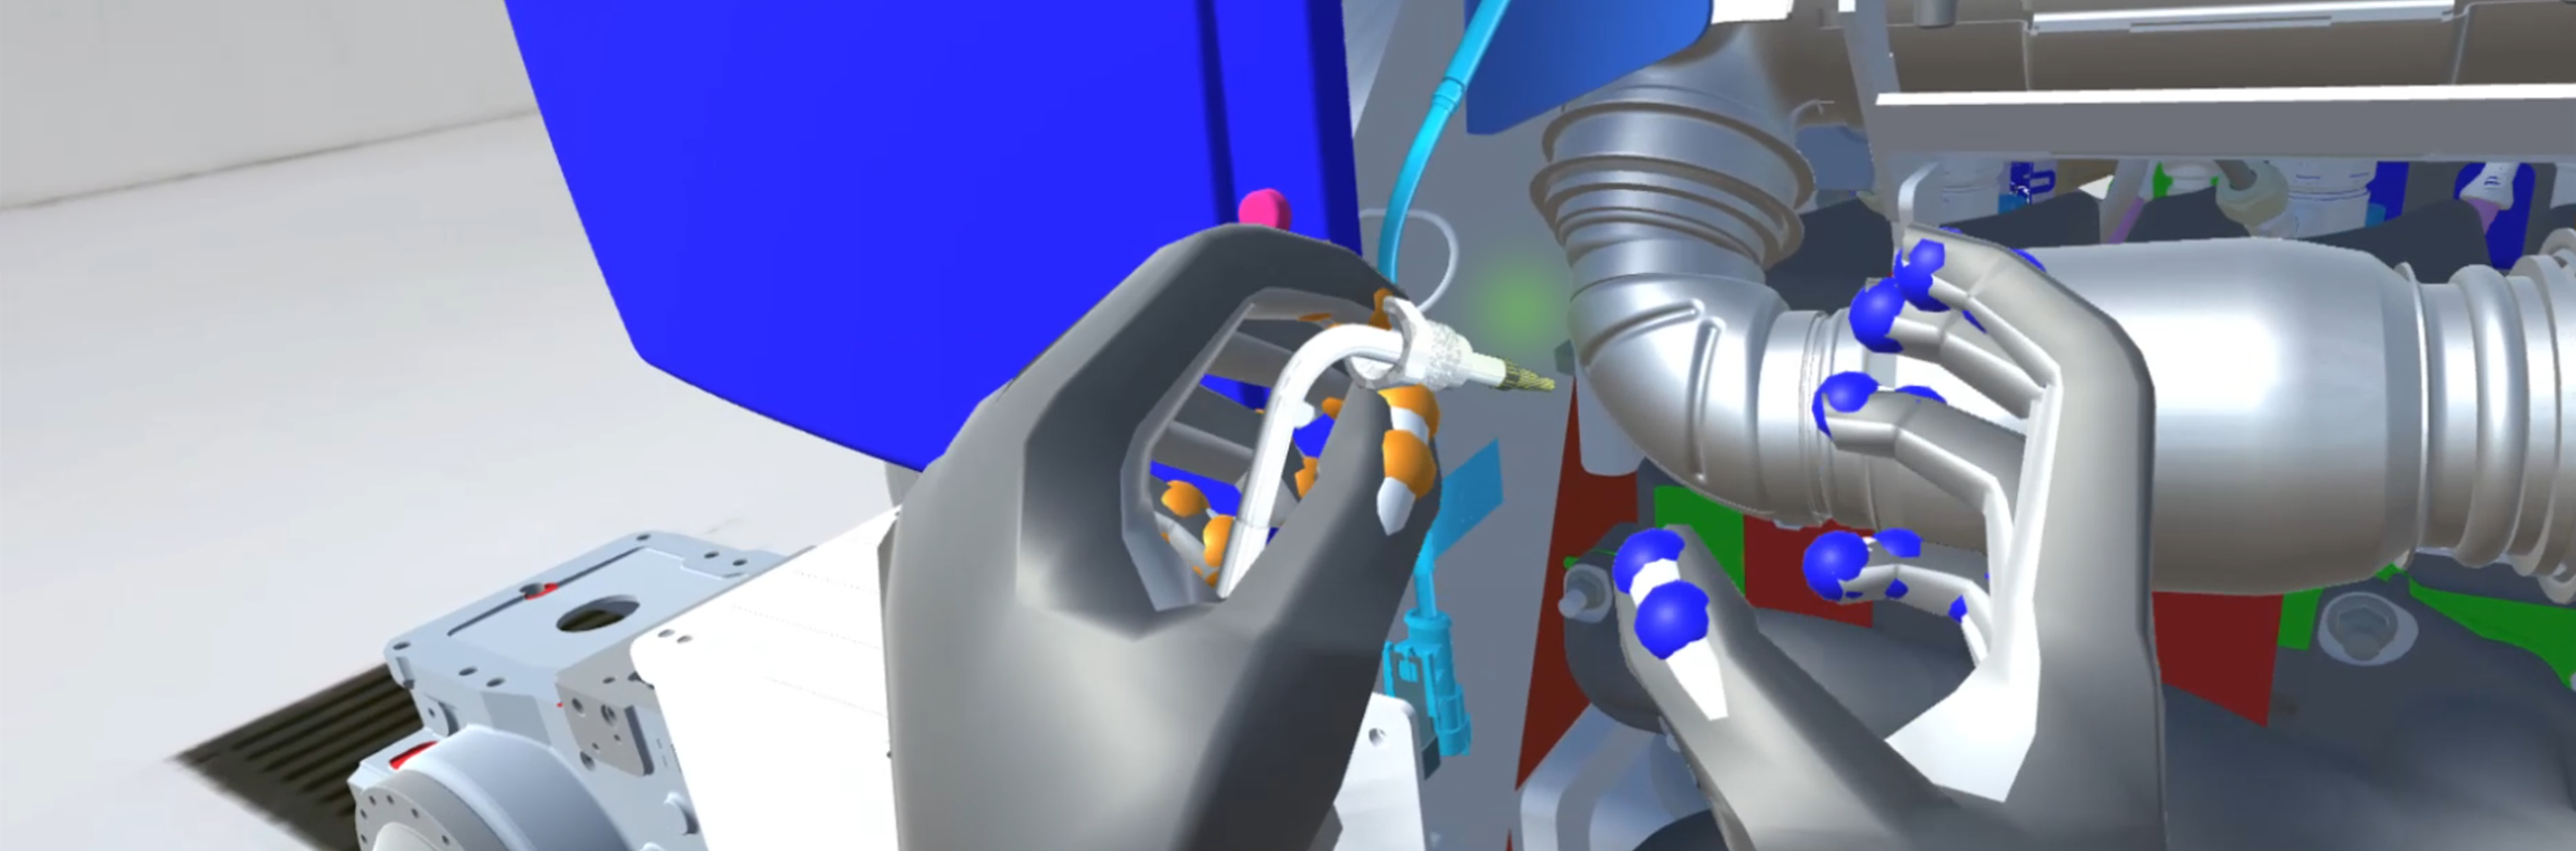 XiLab designs and develops Virtual Assembly and Virtual Training applications to improve the process quality